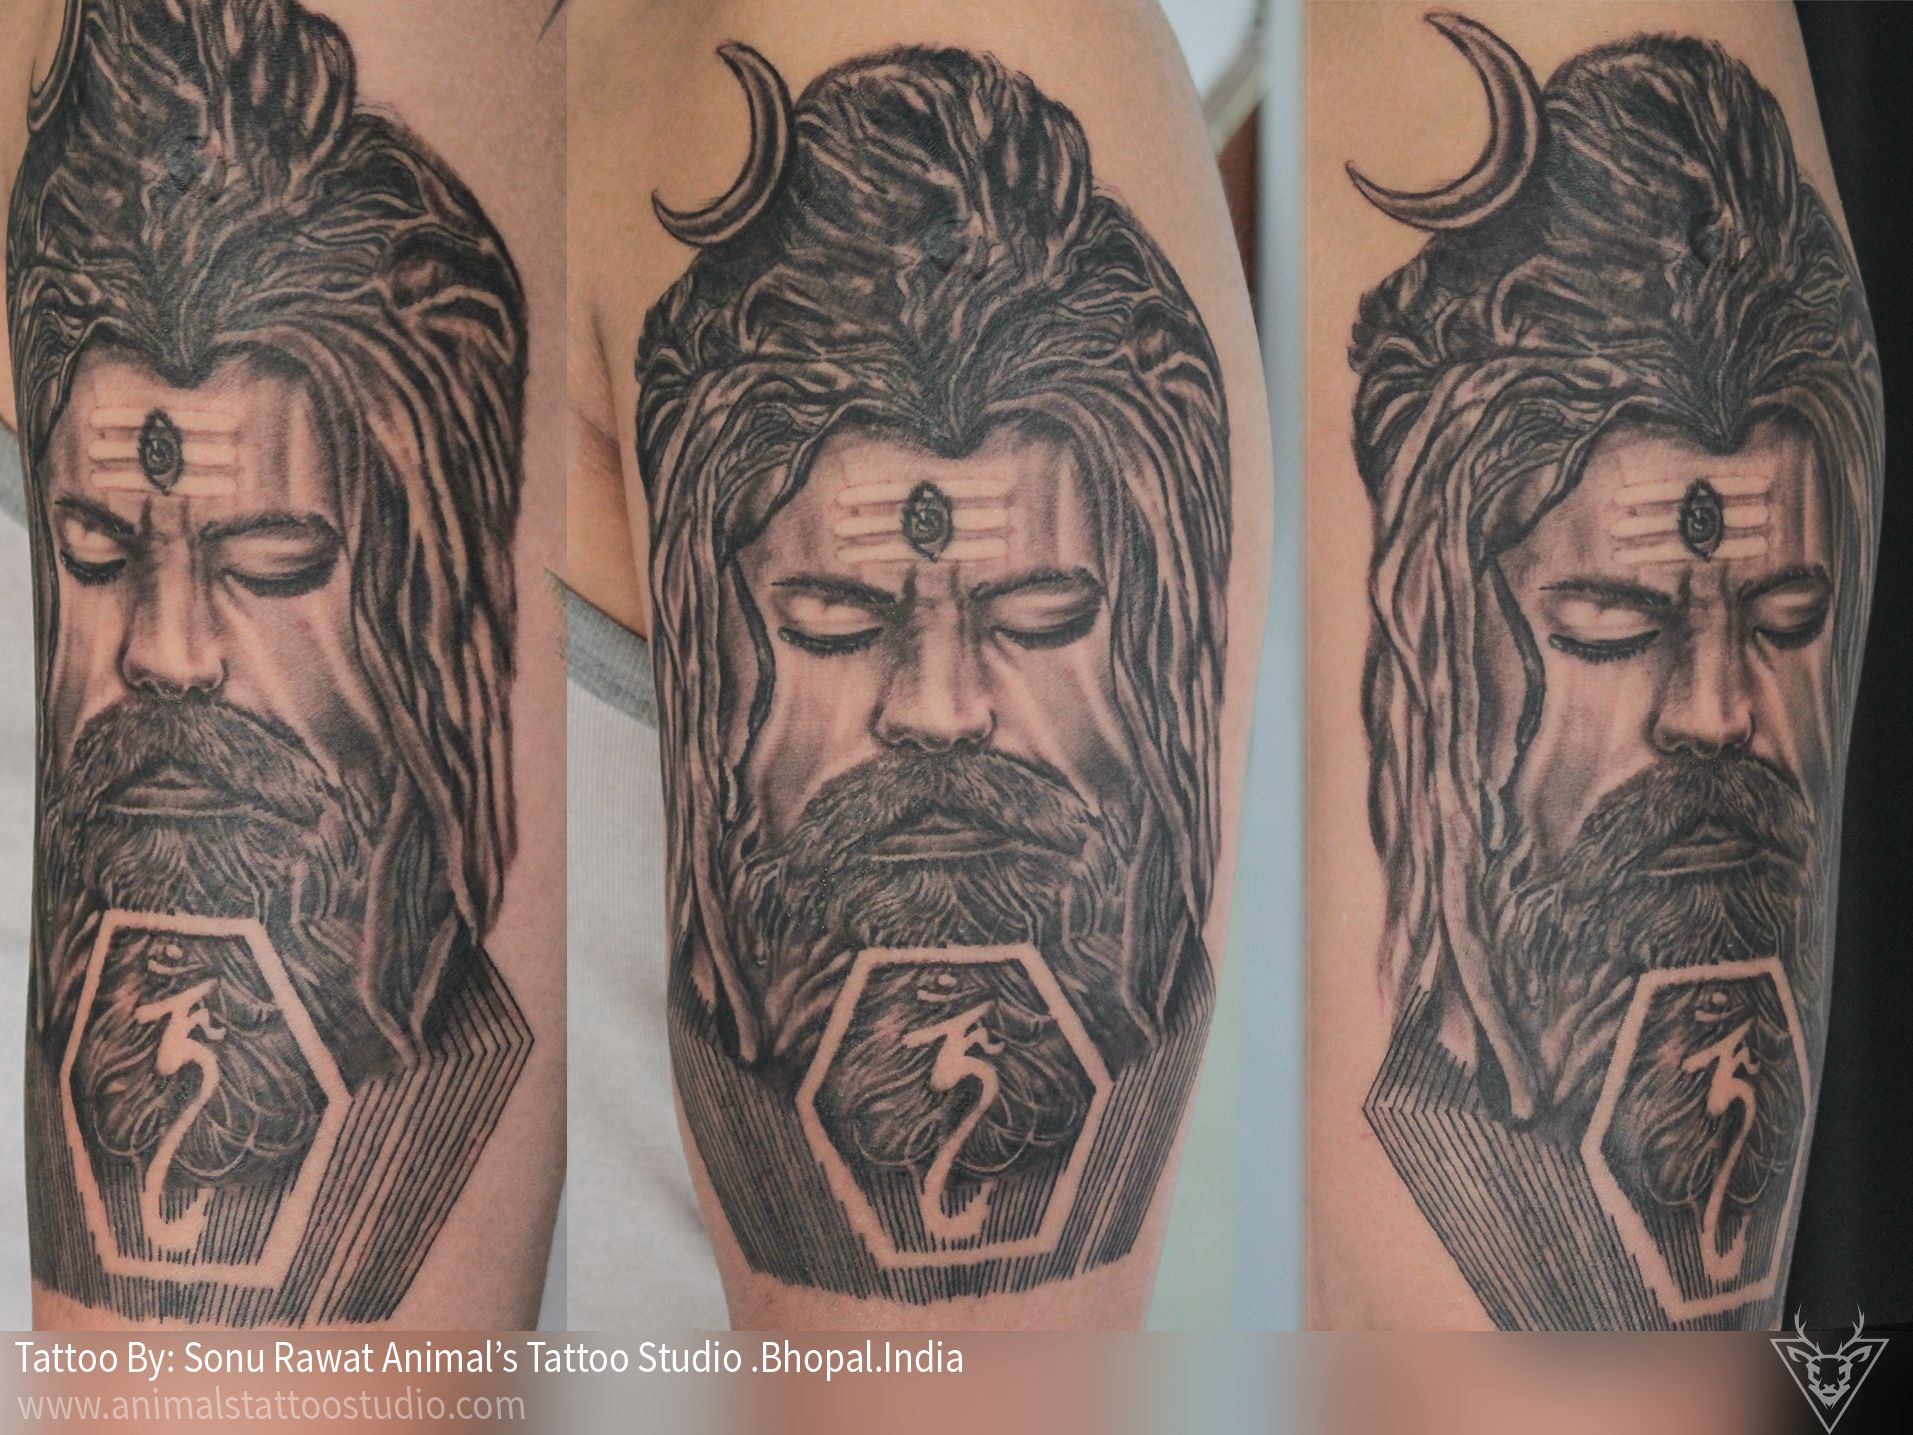 a customize tattoo or design of lord shiv a face of aghori is ...